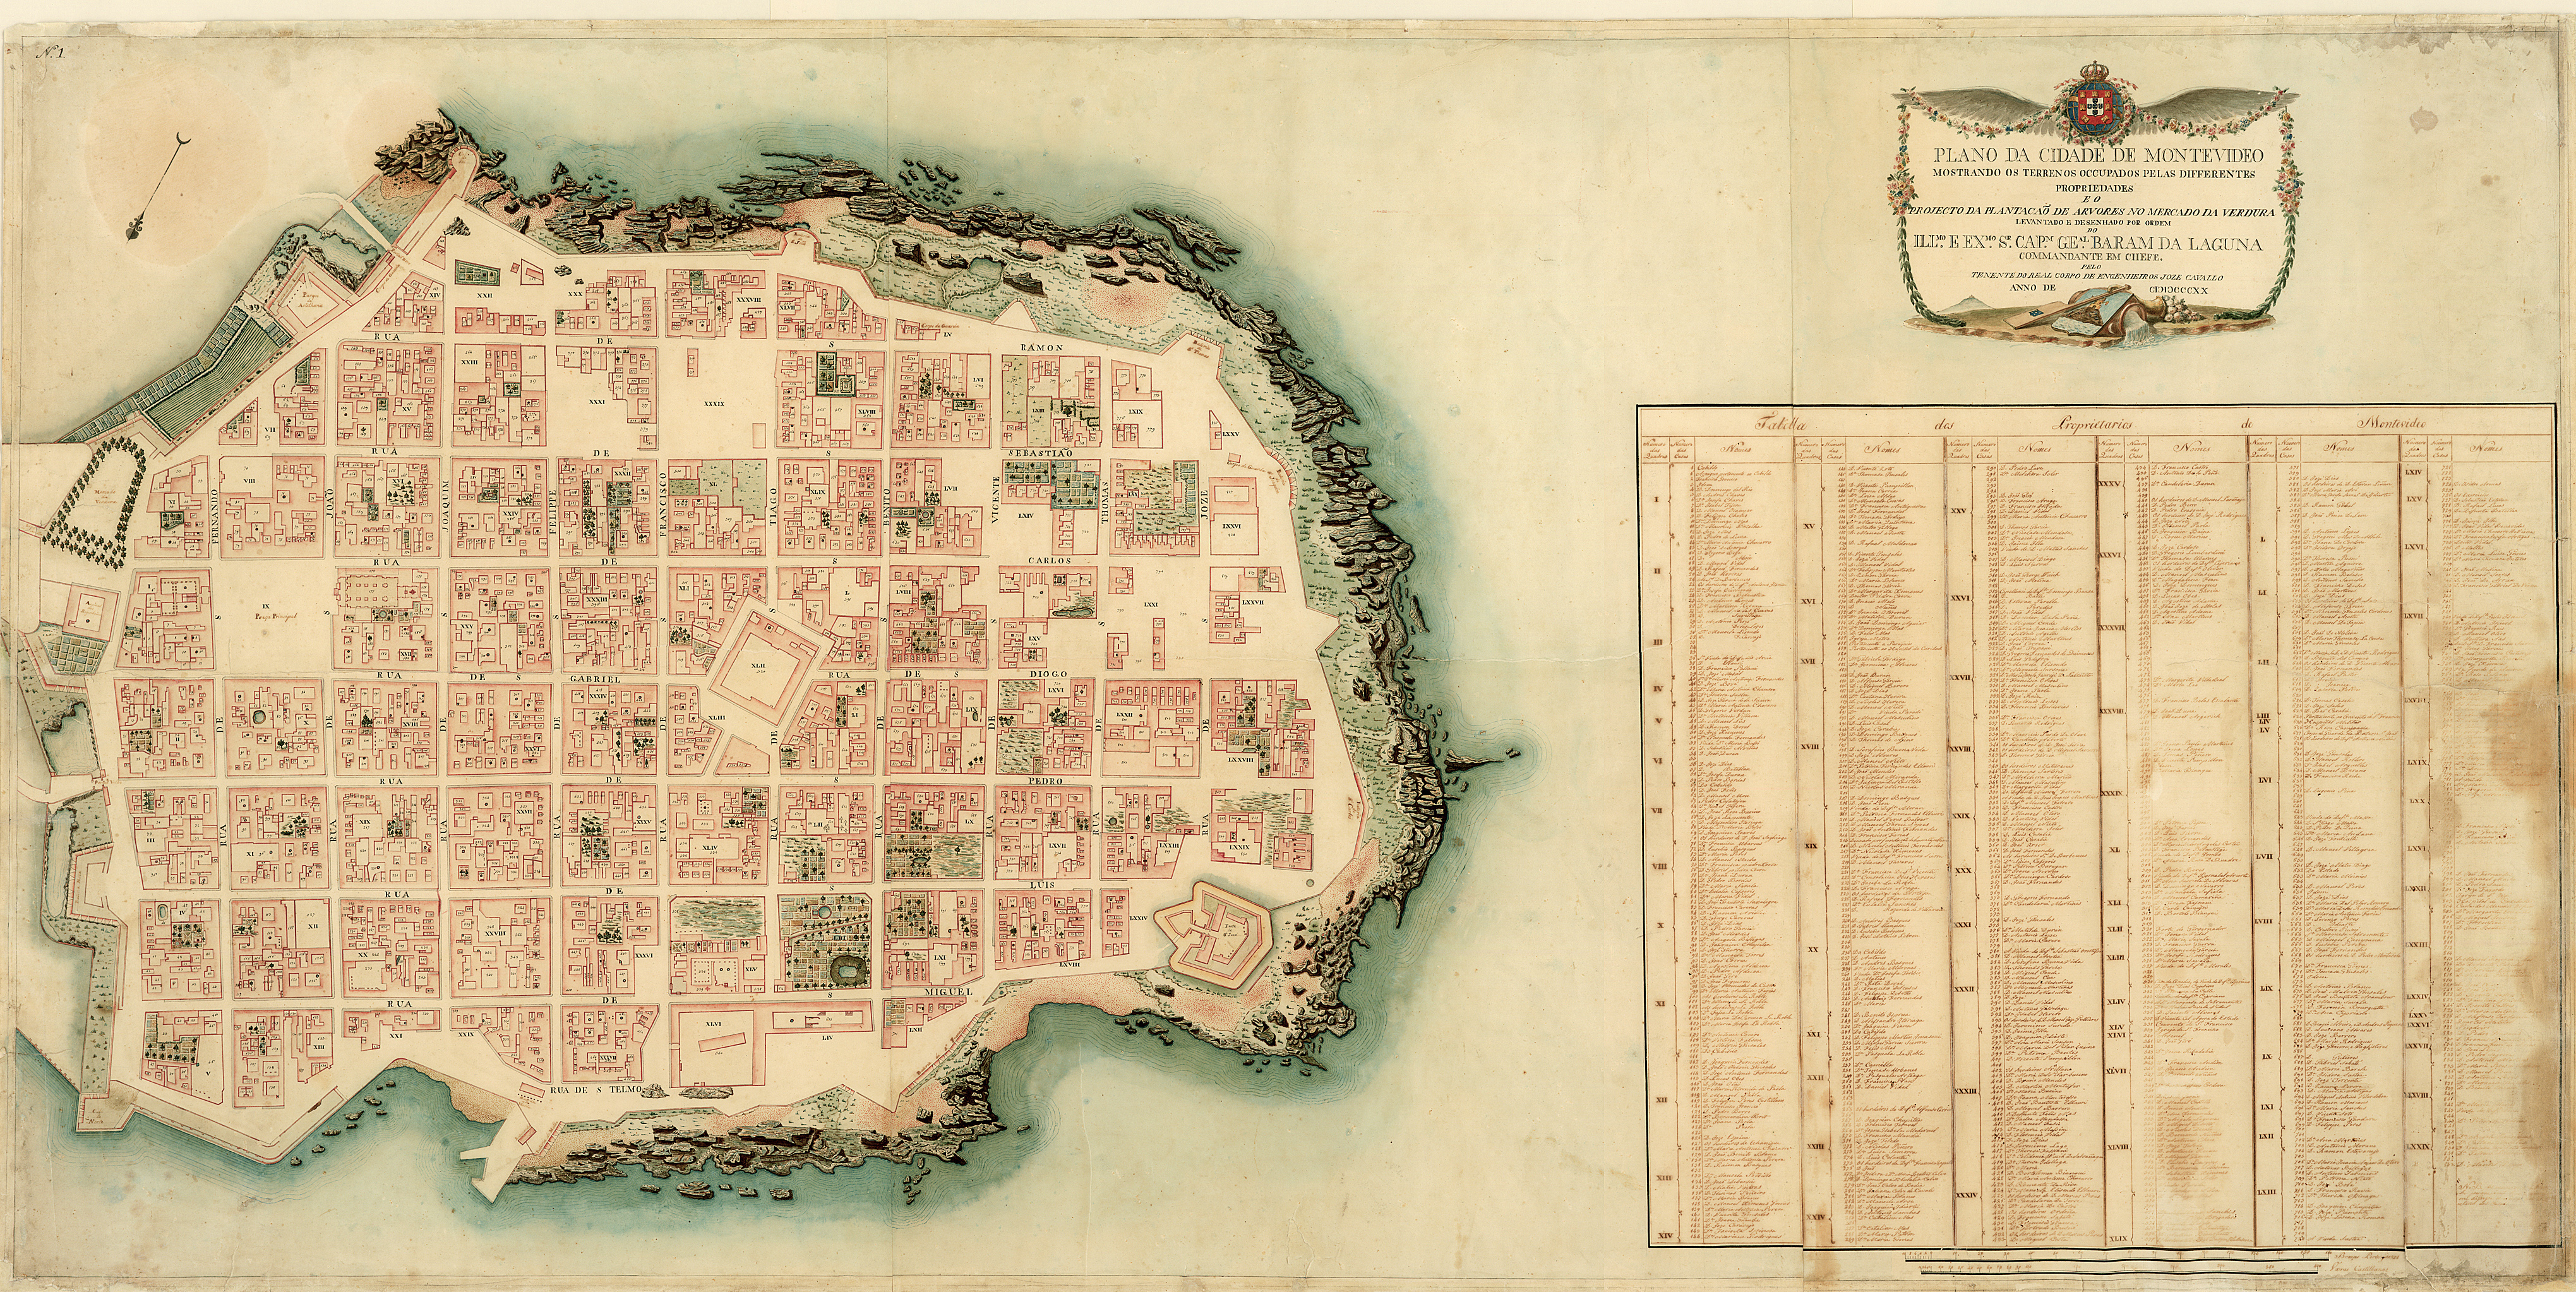 detailed manuscript plan of the city of Montevideo in present-day Uruguay, including location and names of inhabitants of the town, location of churches, fortifications, dwellings, gardens, and some topographical details